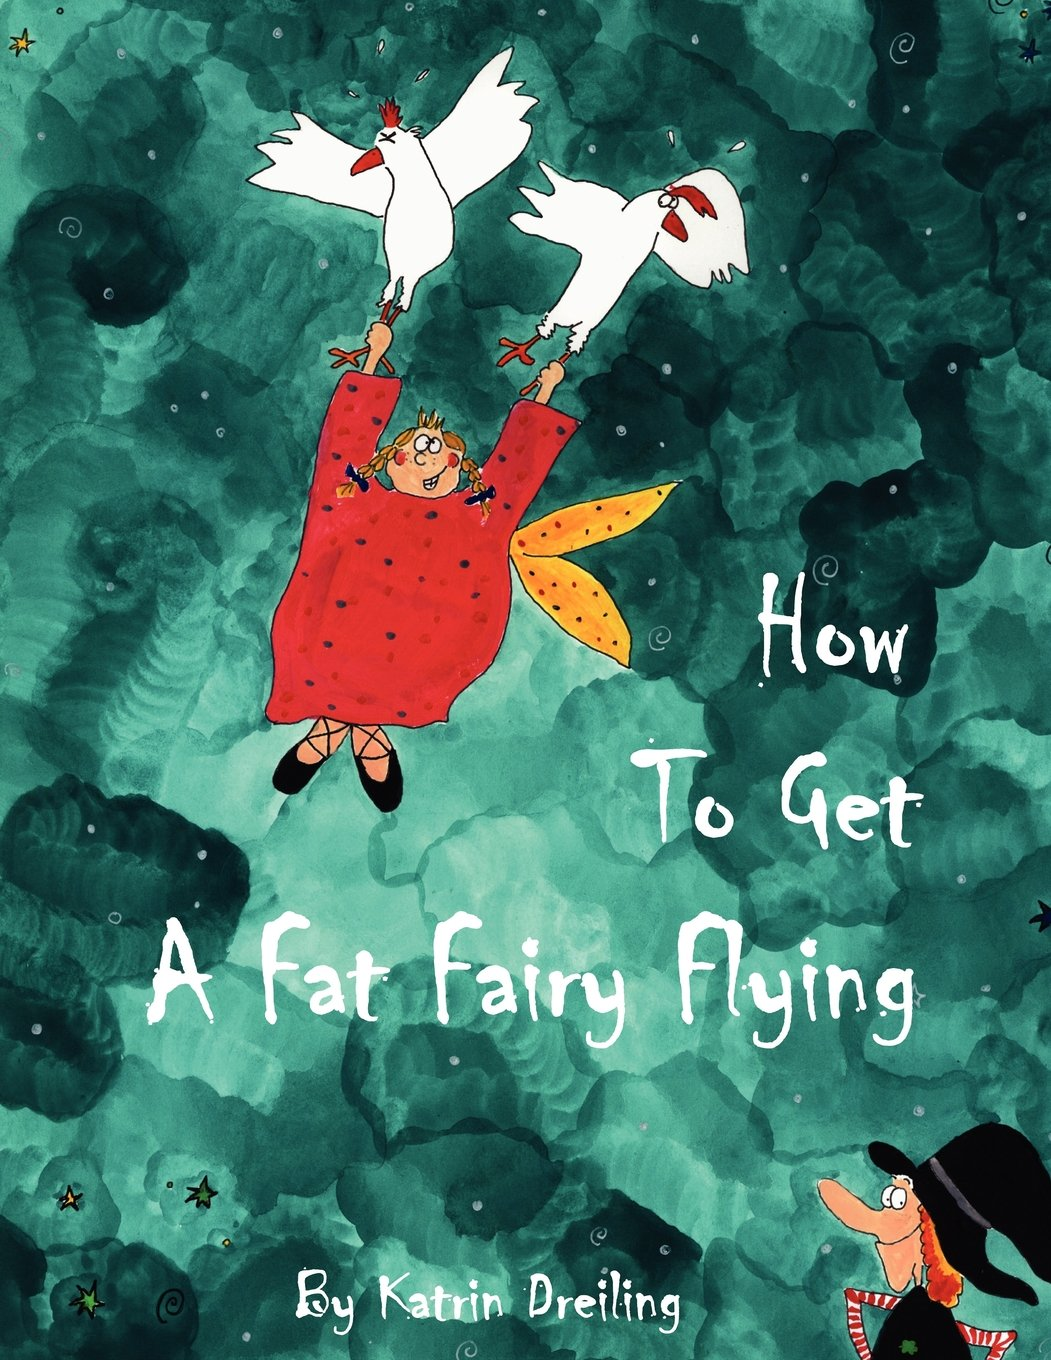 How to get a fat fairy flying